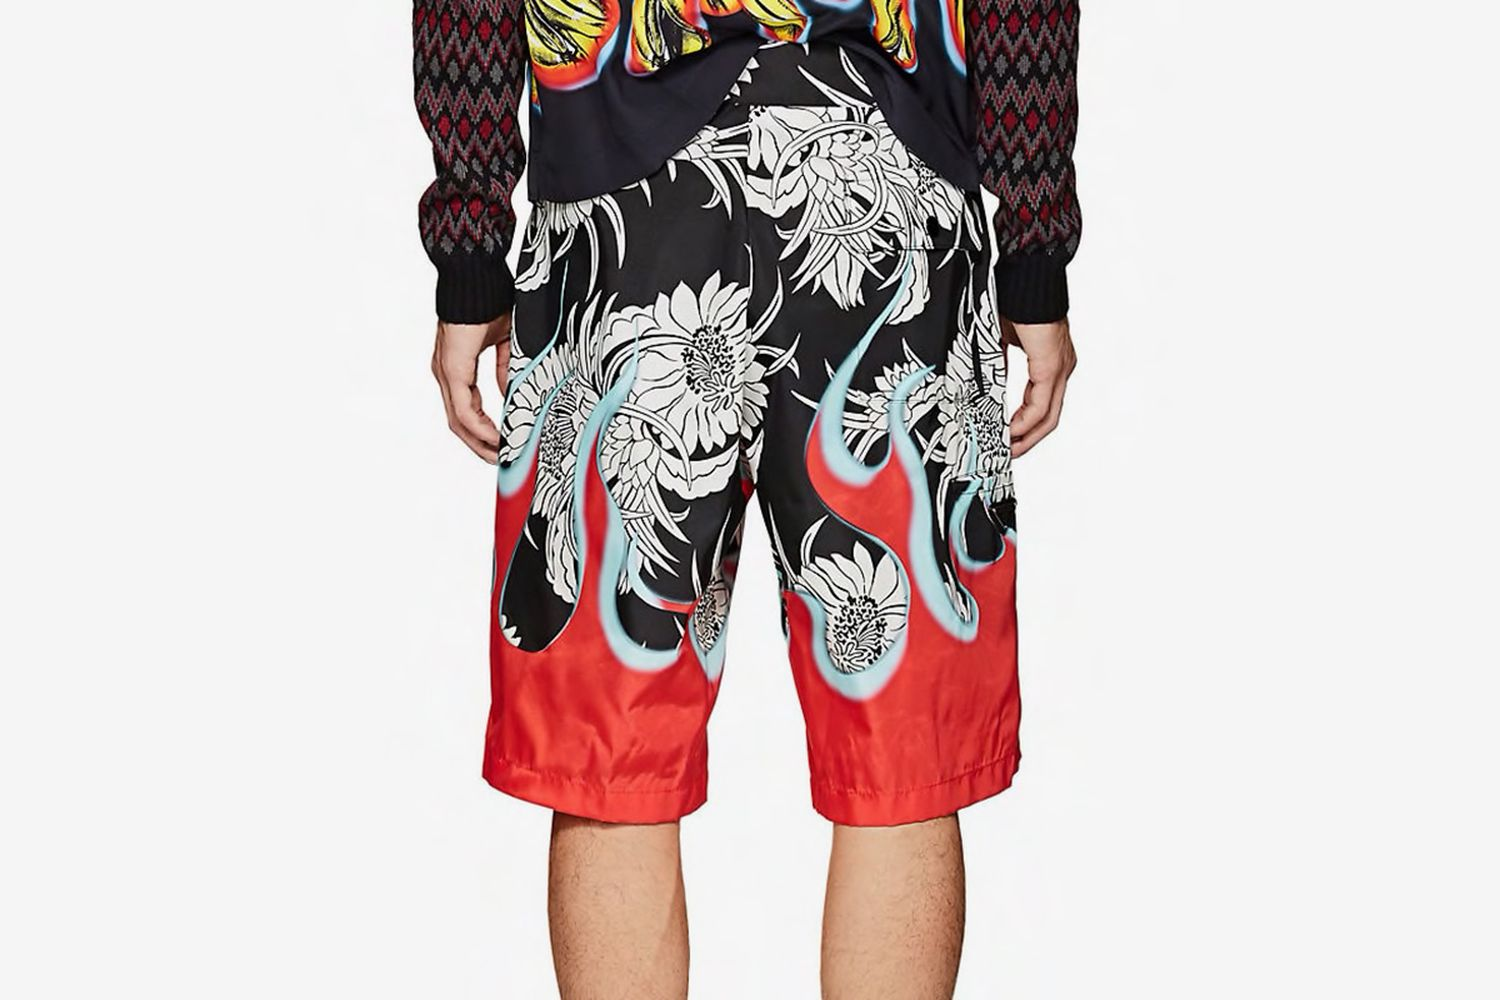 Floral & Flames Board Shorts